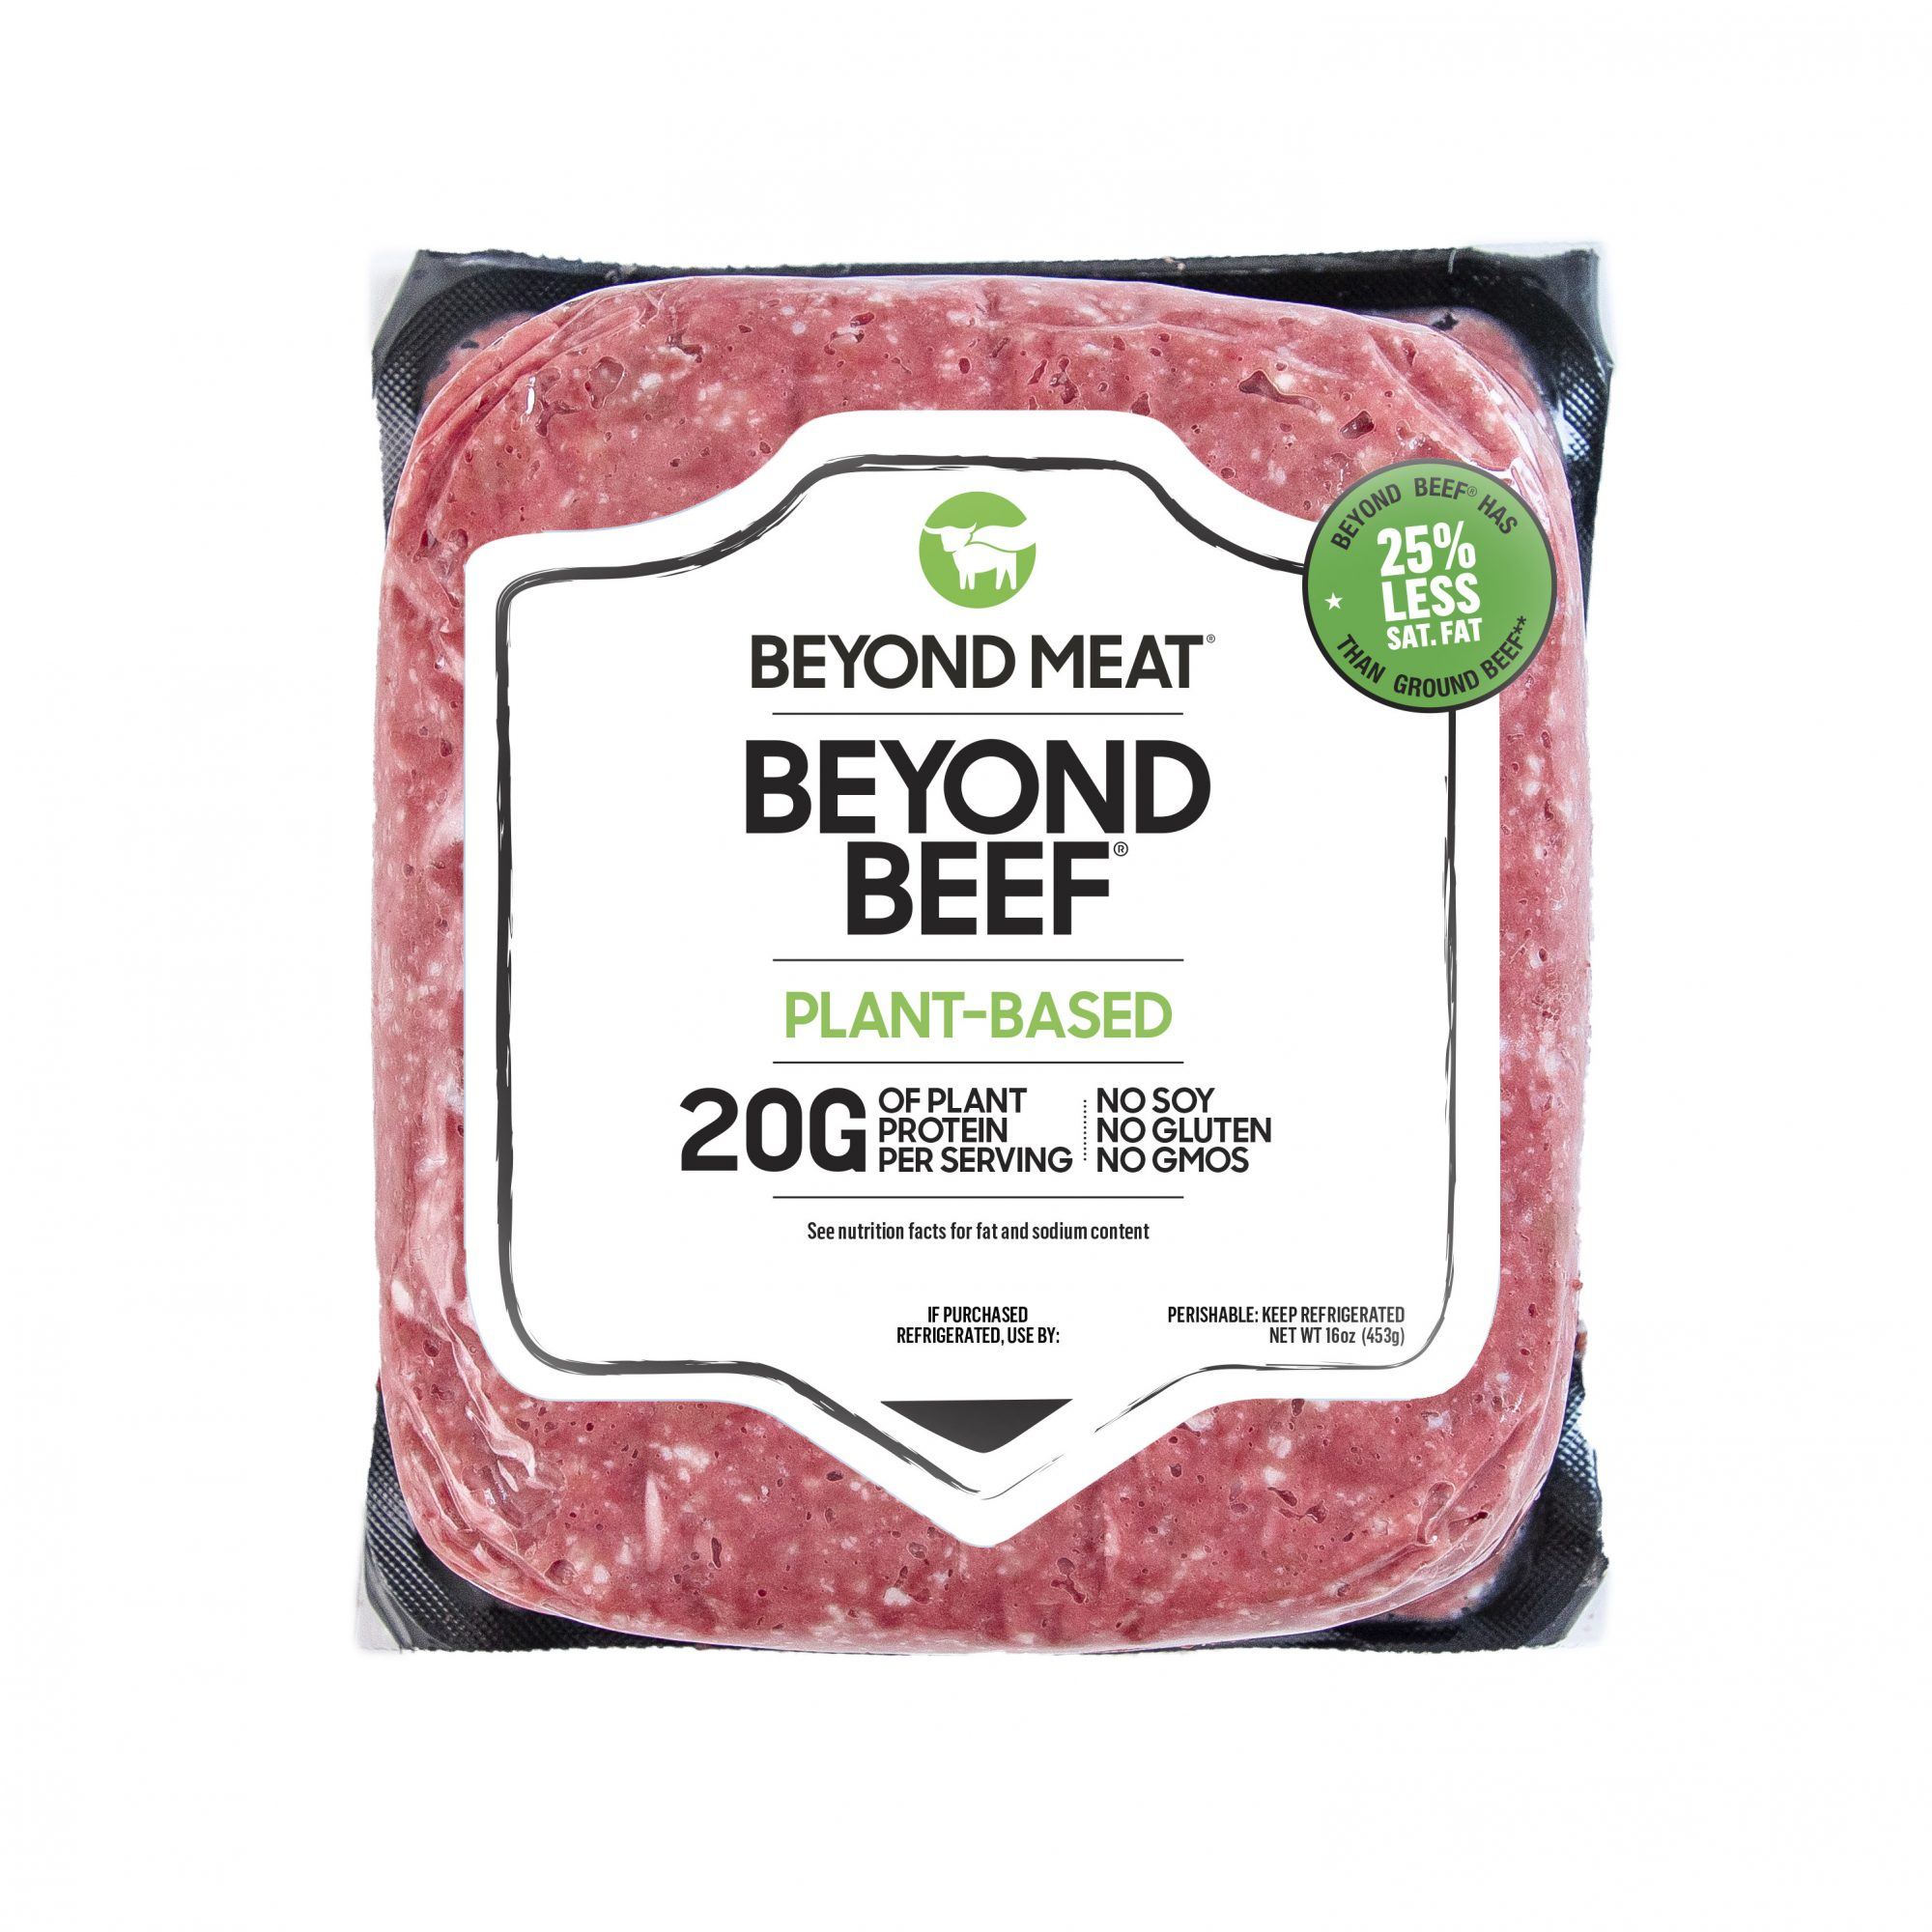 Beyond Meat Unveils New Product: 'Beyond Beef' Ground 'Meat'